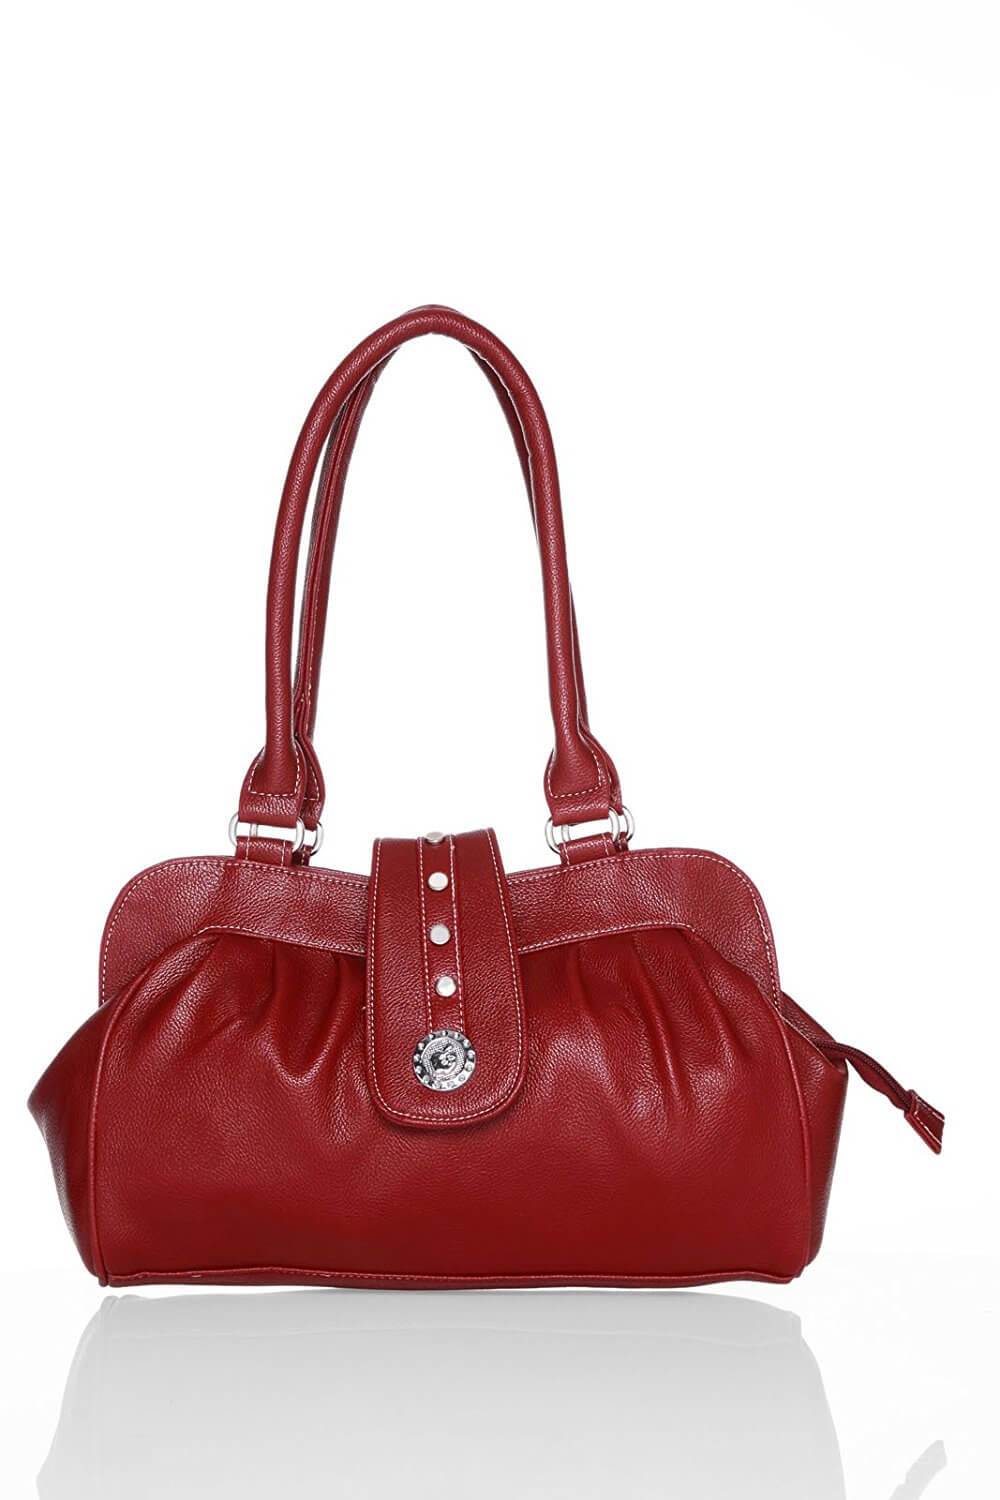 Lady queen casual bag LD - 336